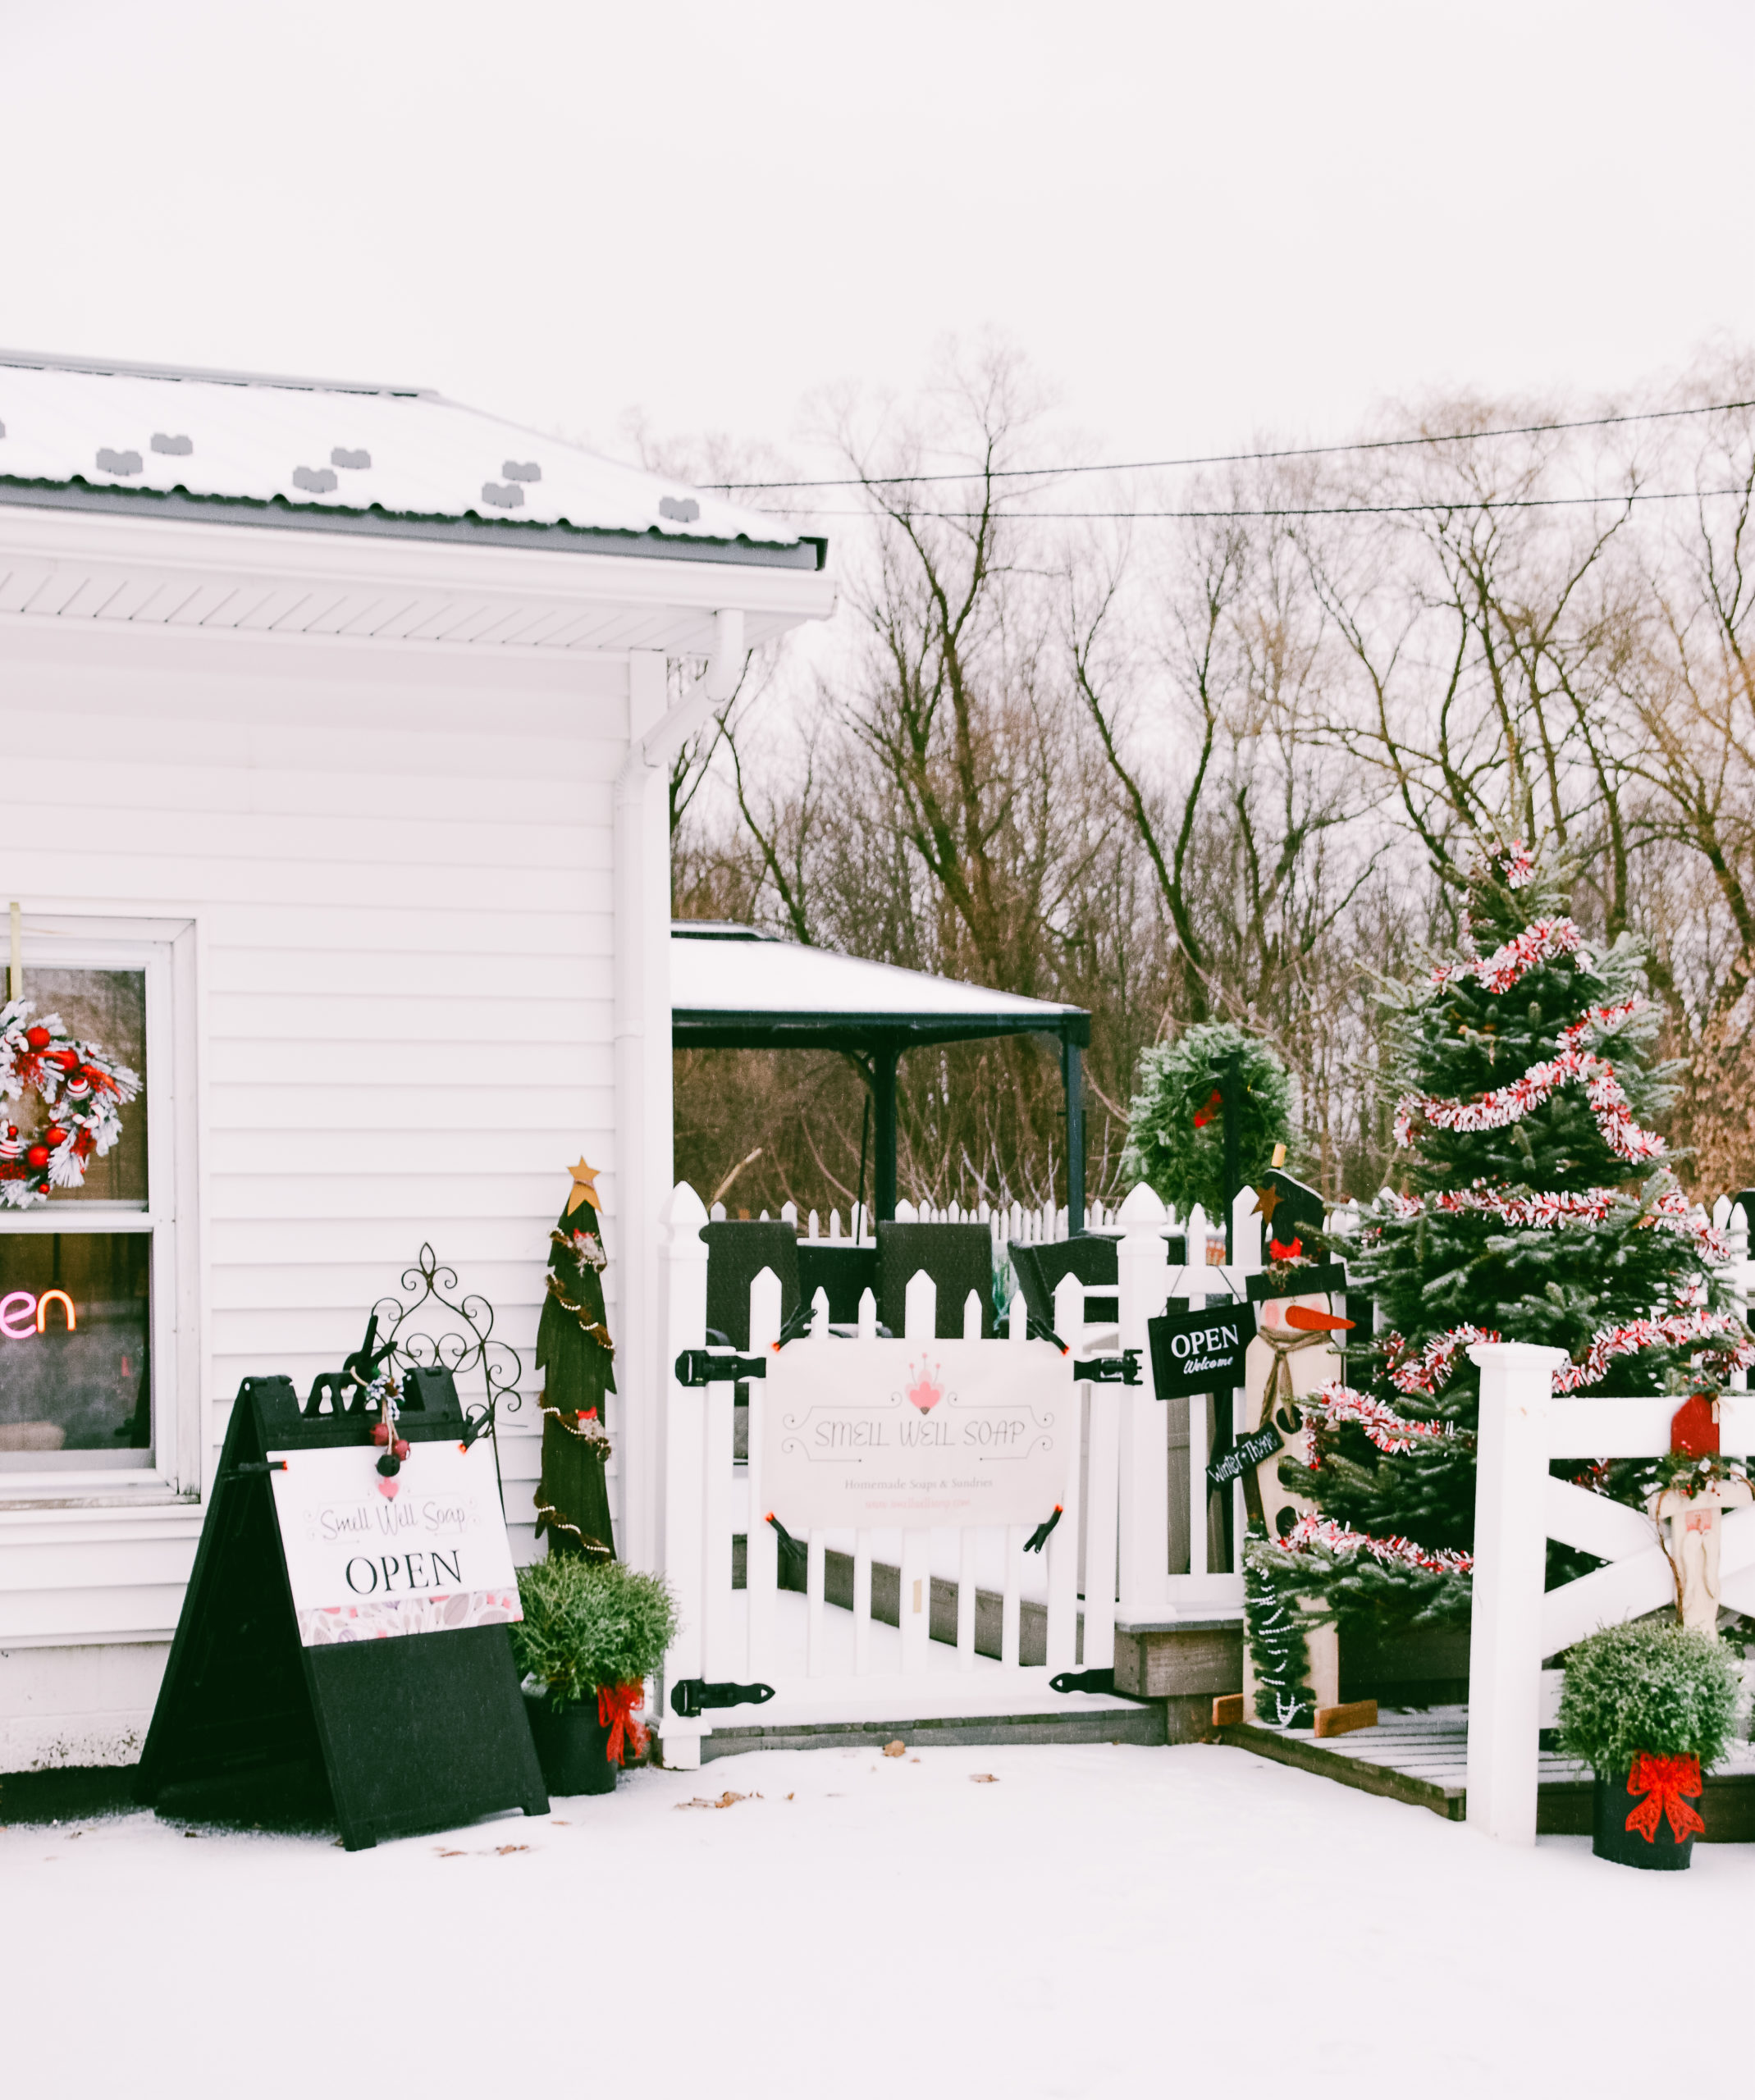 Neighborhood Notes: Smell Well Soap Shop in Palmyra